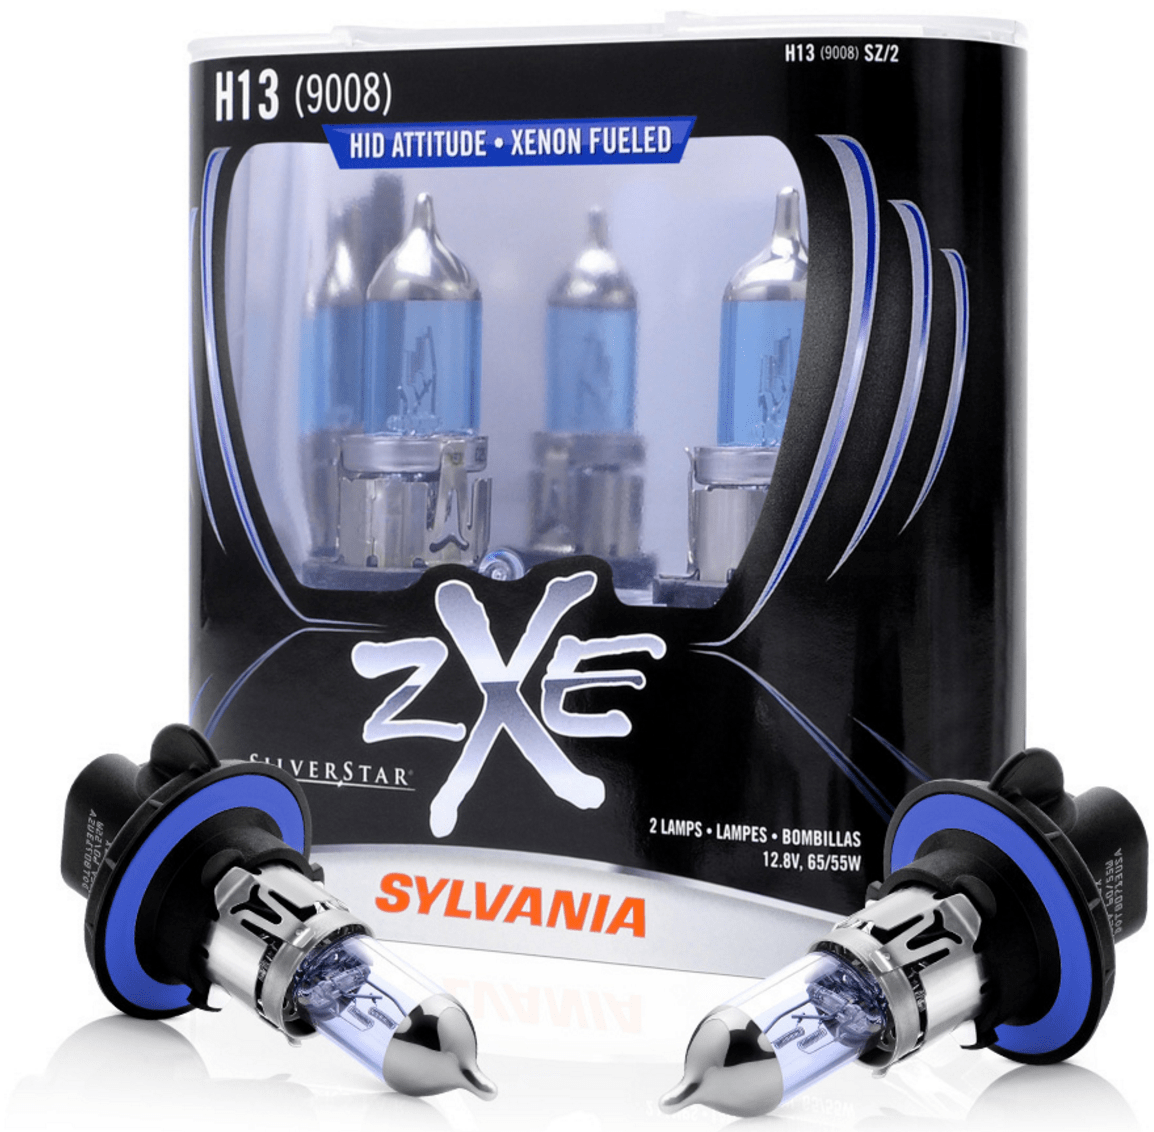 Silverstar Zxe Sylvania Best Headlight Review Bulbs 80nwOkPX